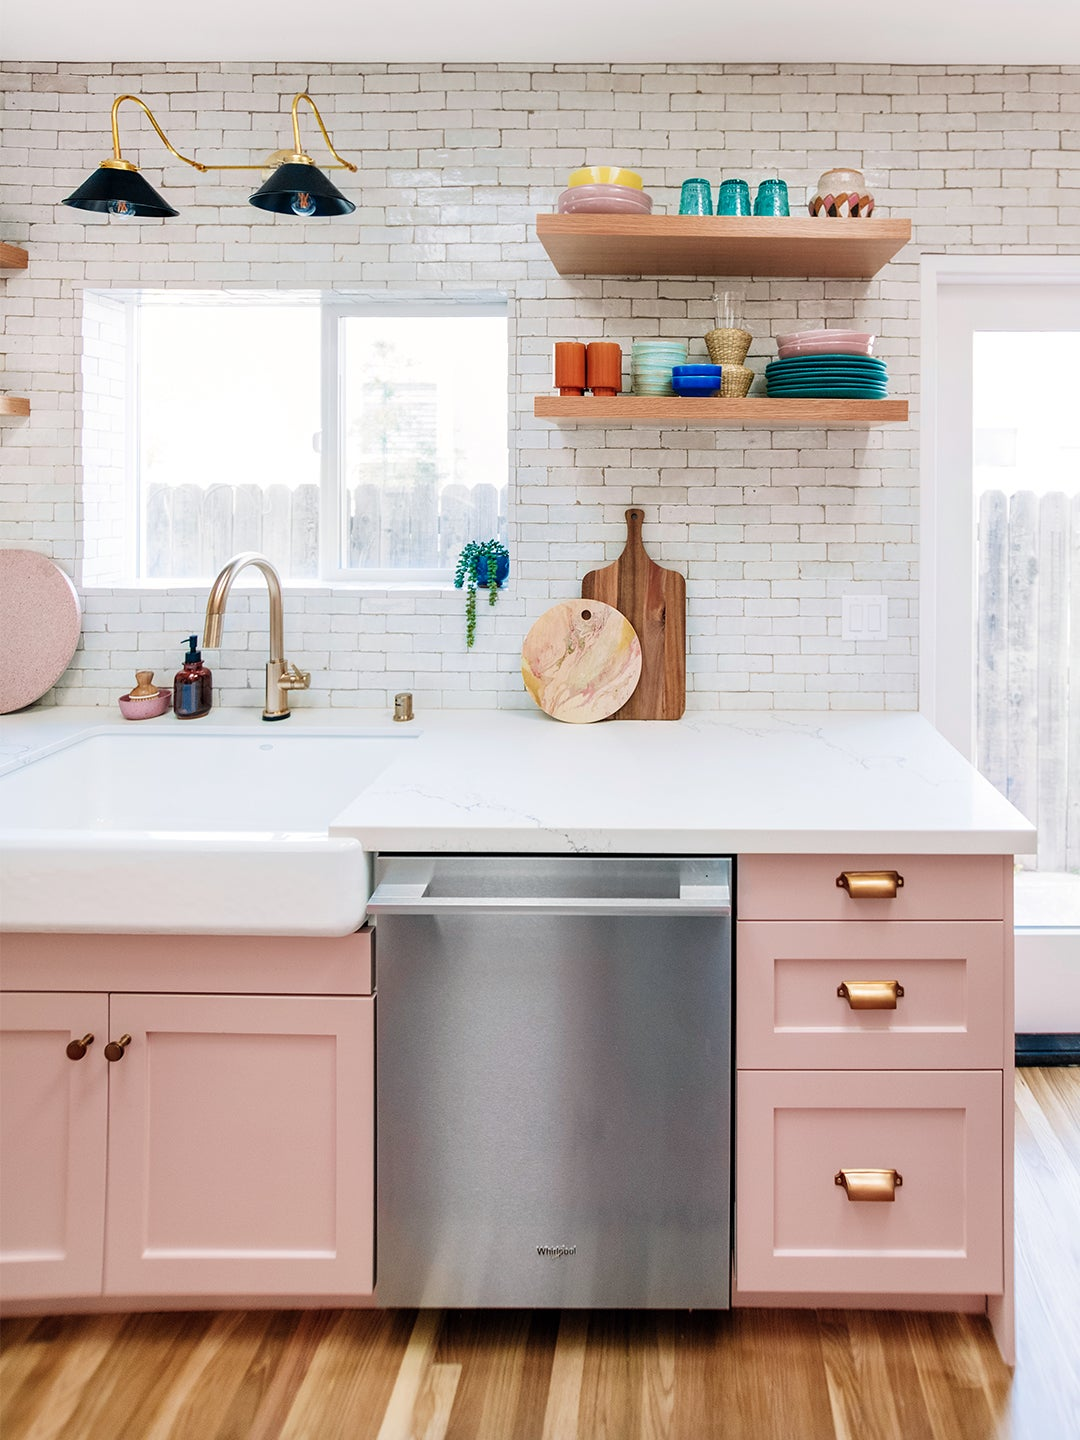 00-FEATURE-Painted-kitchen-Cabinets-domino